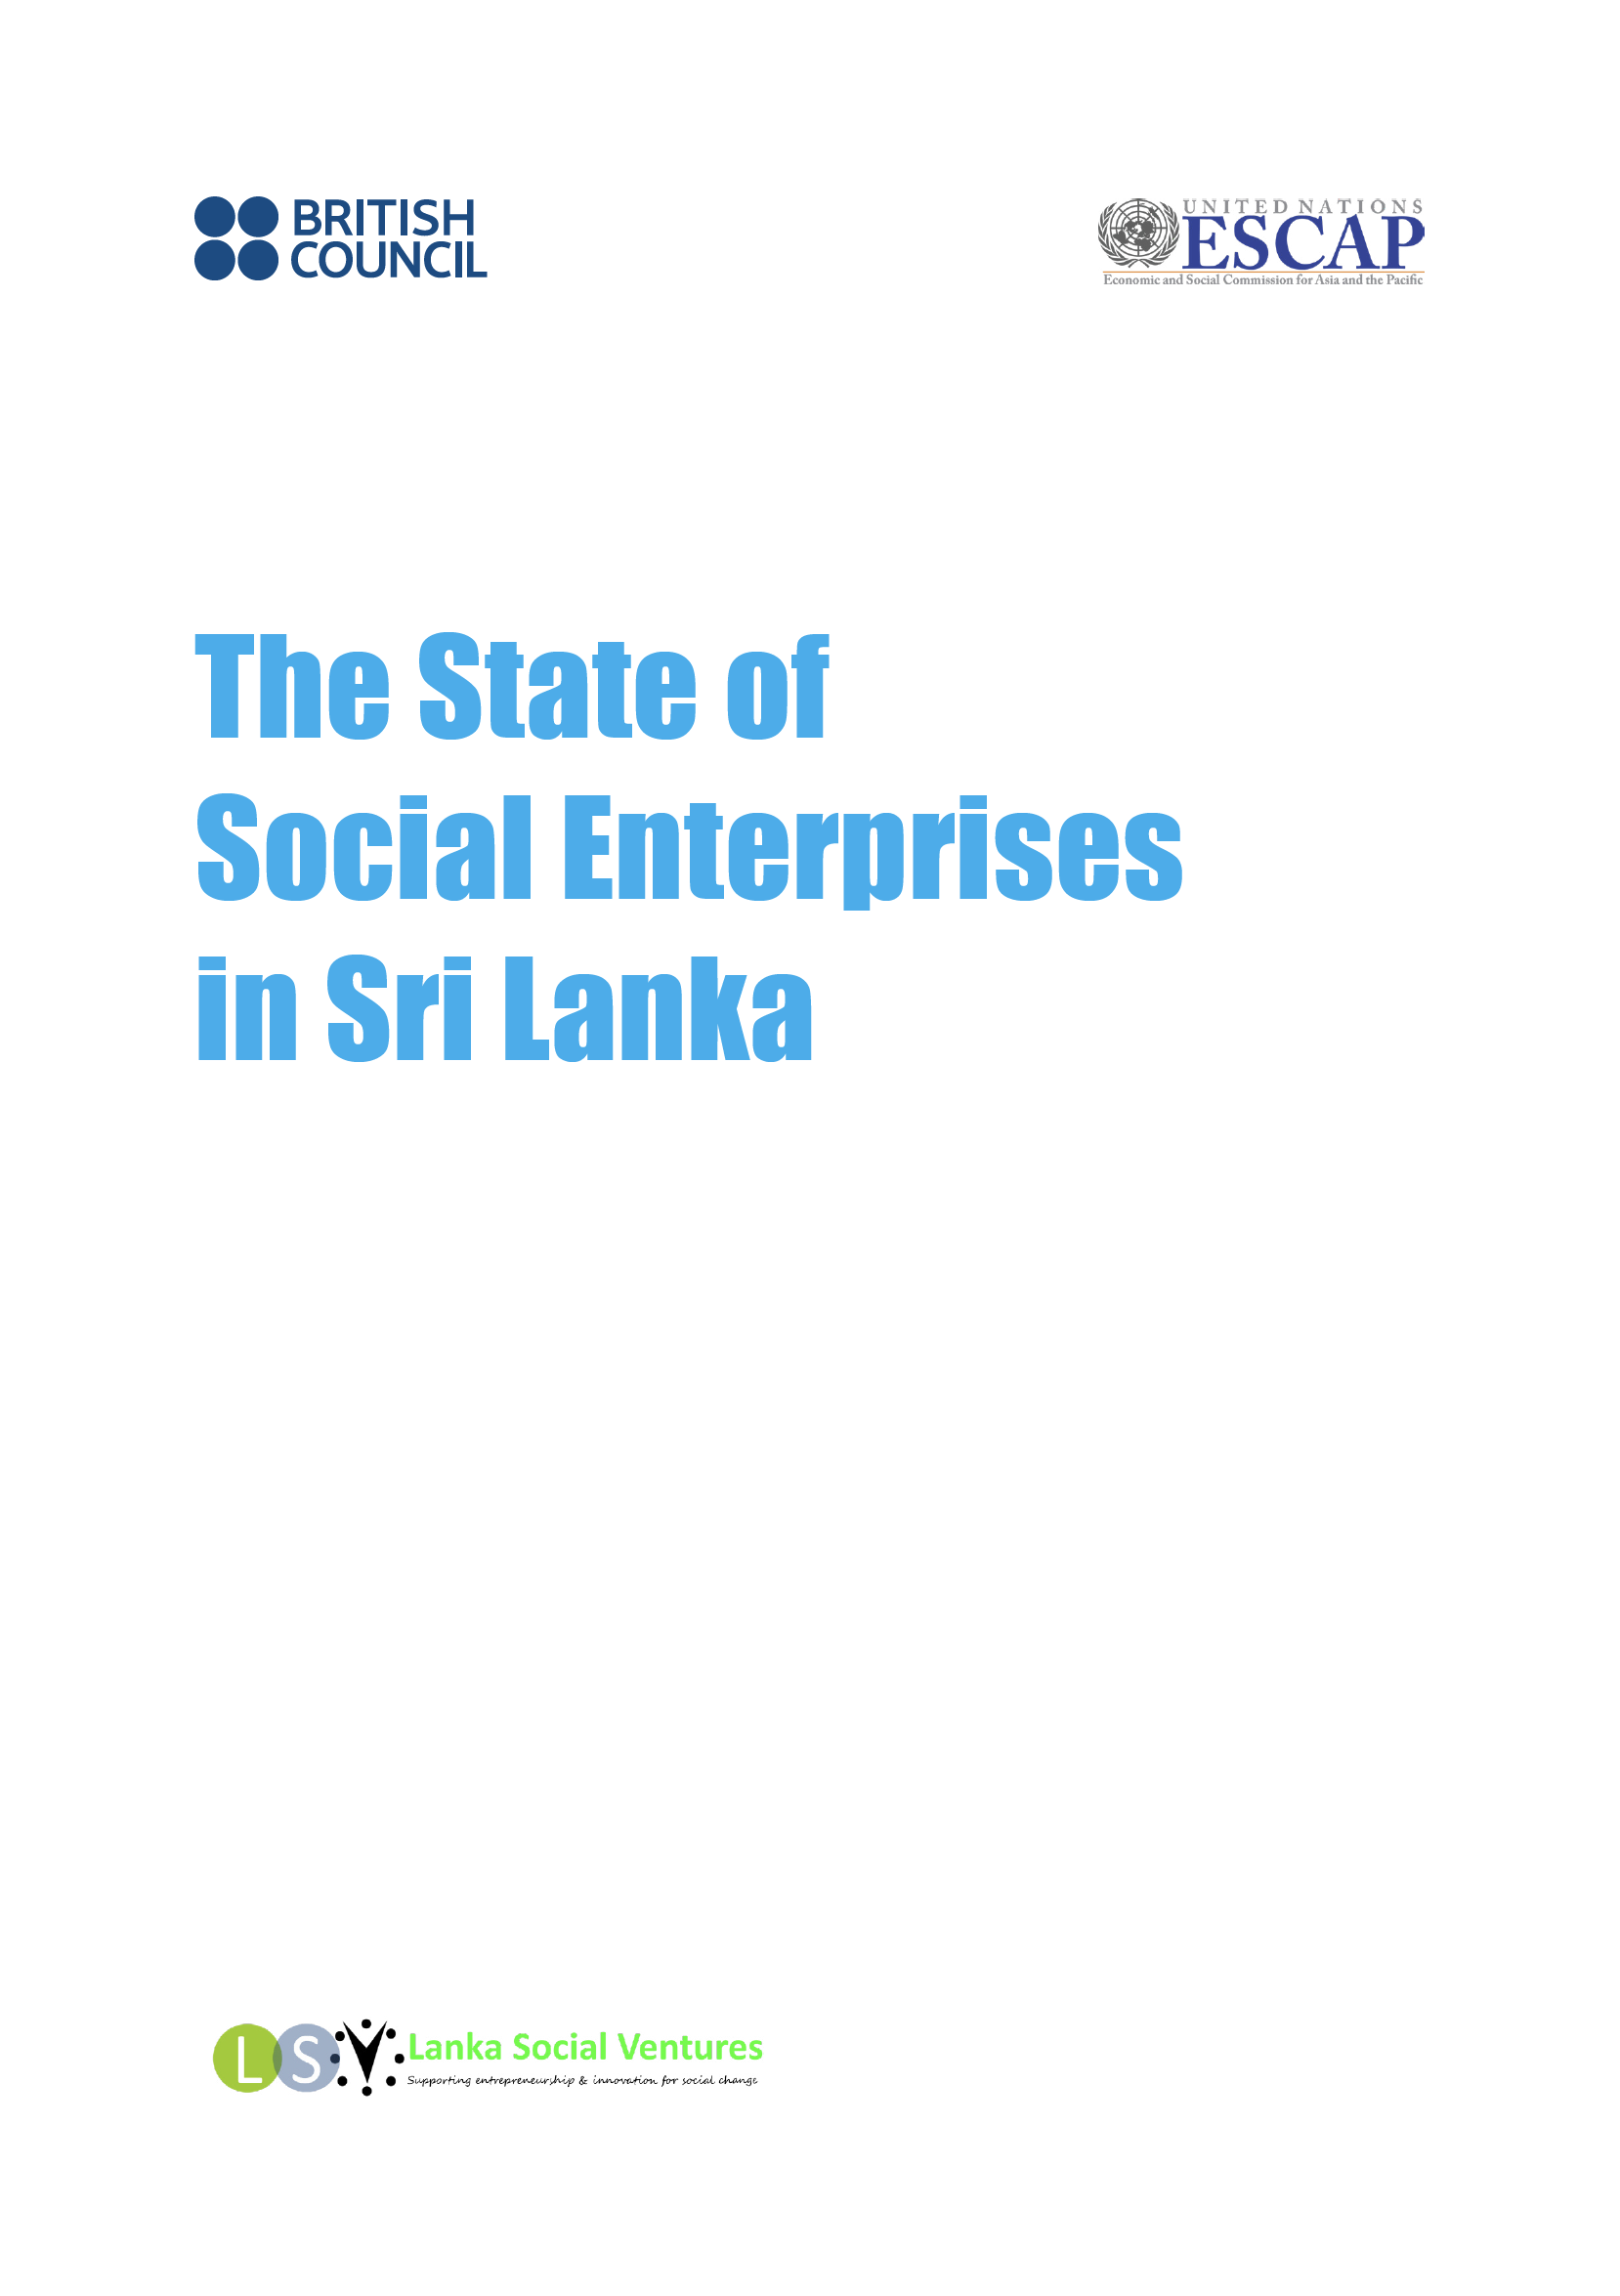 The State of Social Enterprises in Sri Lanka report cover